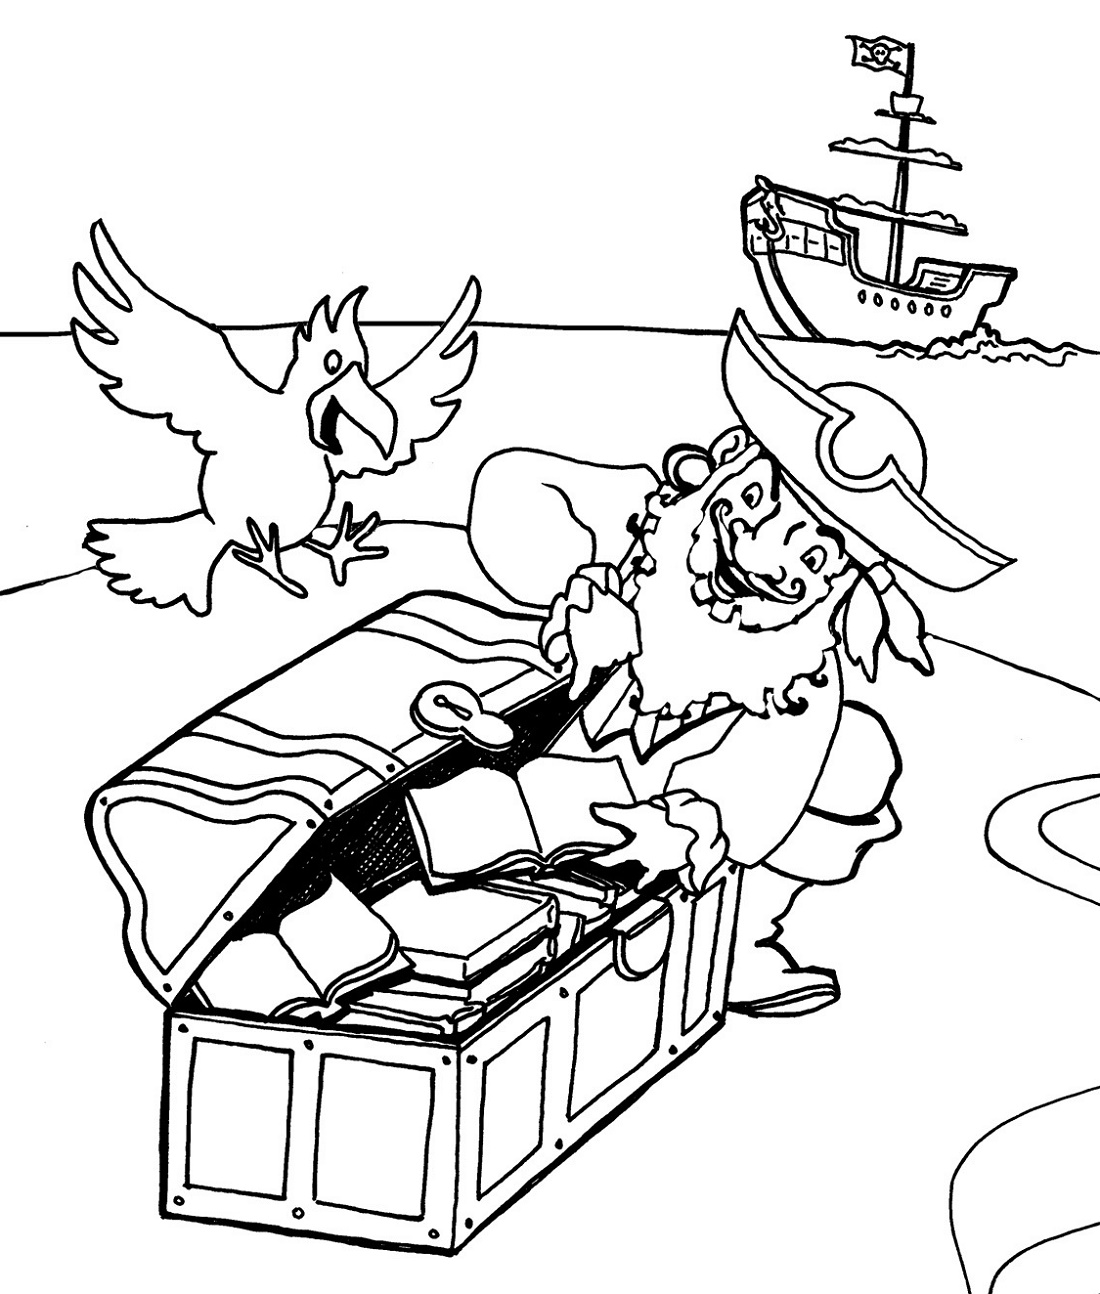 Pirate Coloring Pages For Kids